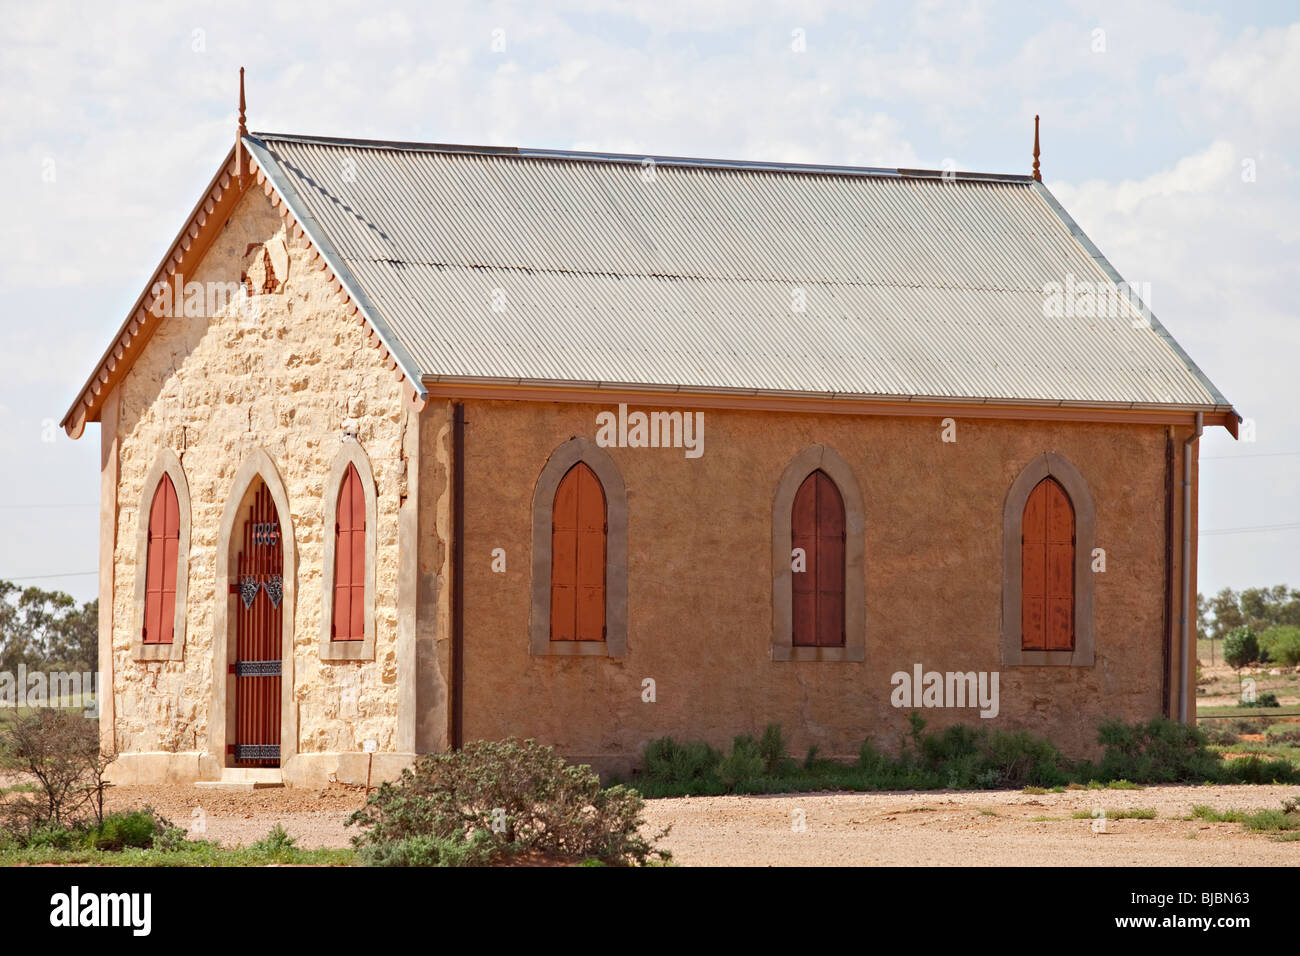 Evangelisch-methodistische Kirche, Silverton in der Nähe von Broken Hill, Outback Australien New South Wales Stockfoto